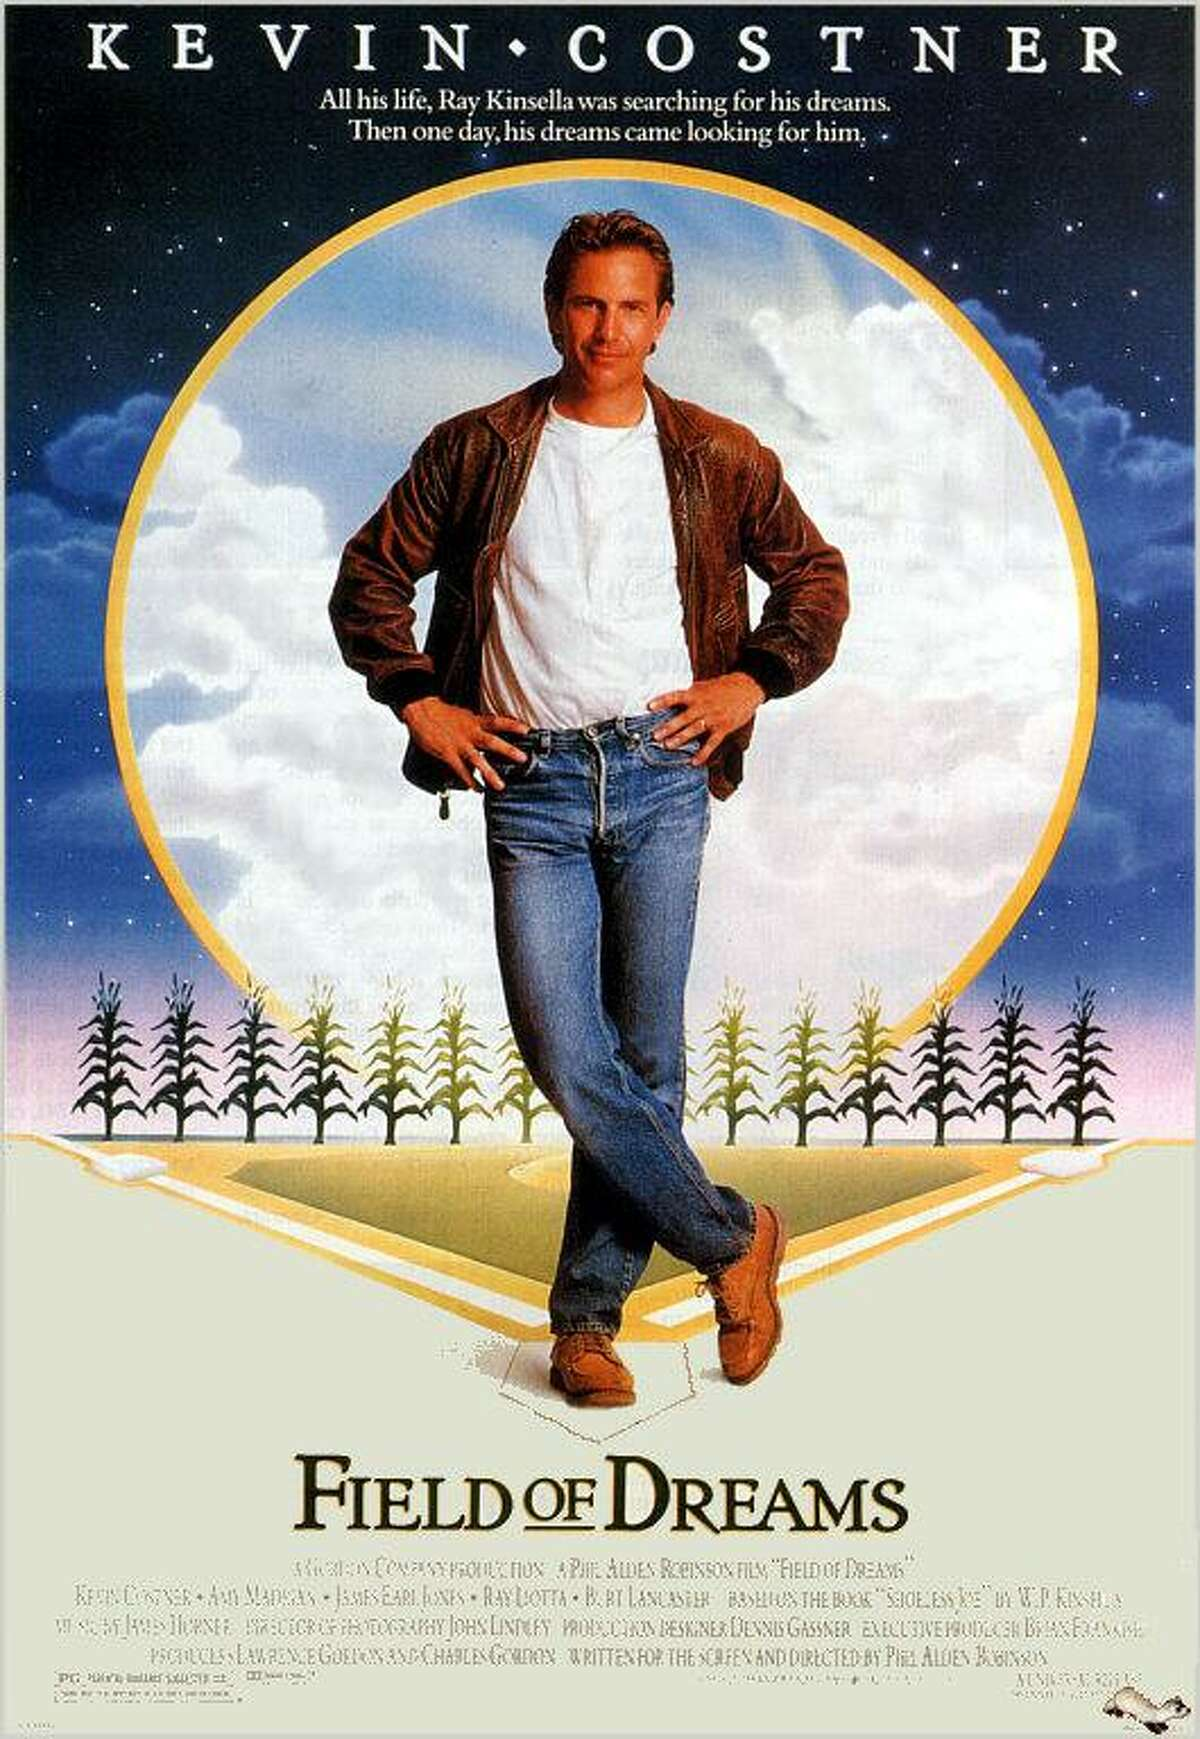 """The city of Richmond's Movies At Wessendorff free outdoor film features """"Field of Dreams"""" at 7:45 p.m. Friday, Sept. 3, at Wessendorff Park, 500 Preston St., in Richmond. The free family event is for residents and visitors. Rotary Club of Richmond will provide free popcorn and the city will provide water. Viewers are encouraged everyone to bring their own chairs and/or blankets. Food and dessert trucks will be on site for food purchase, but attendees are welcome to bring their own food and drink."""